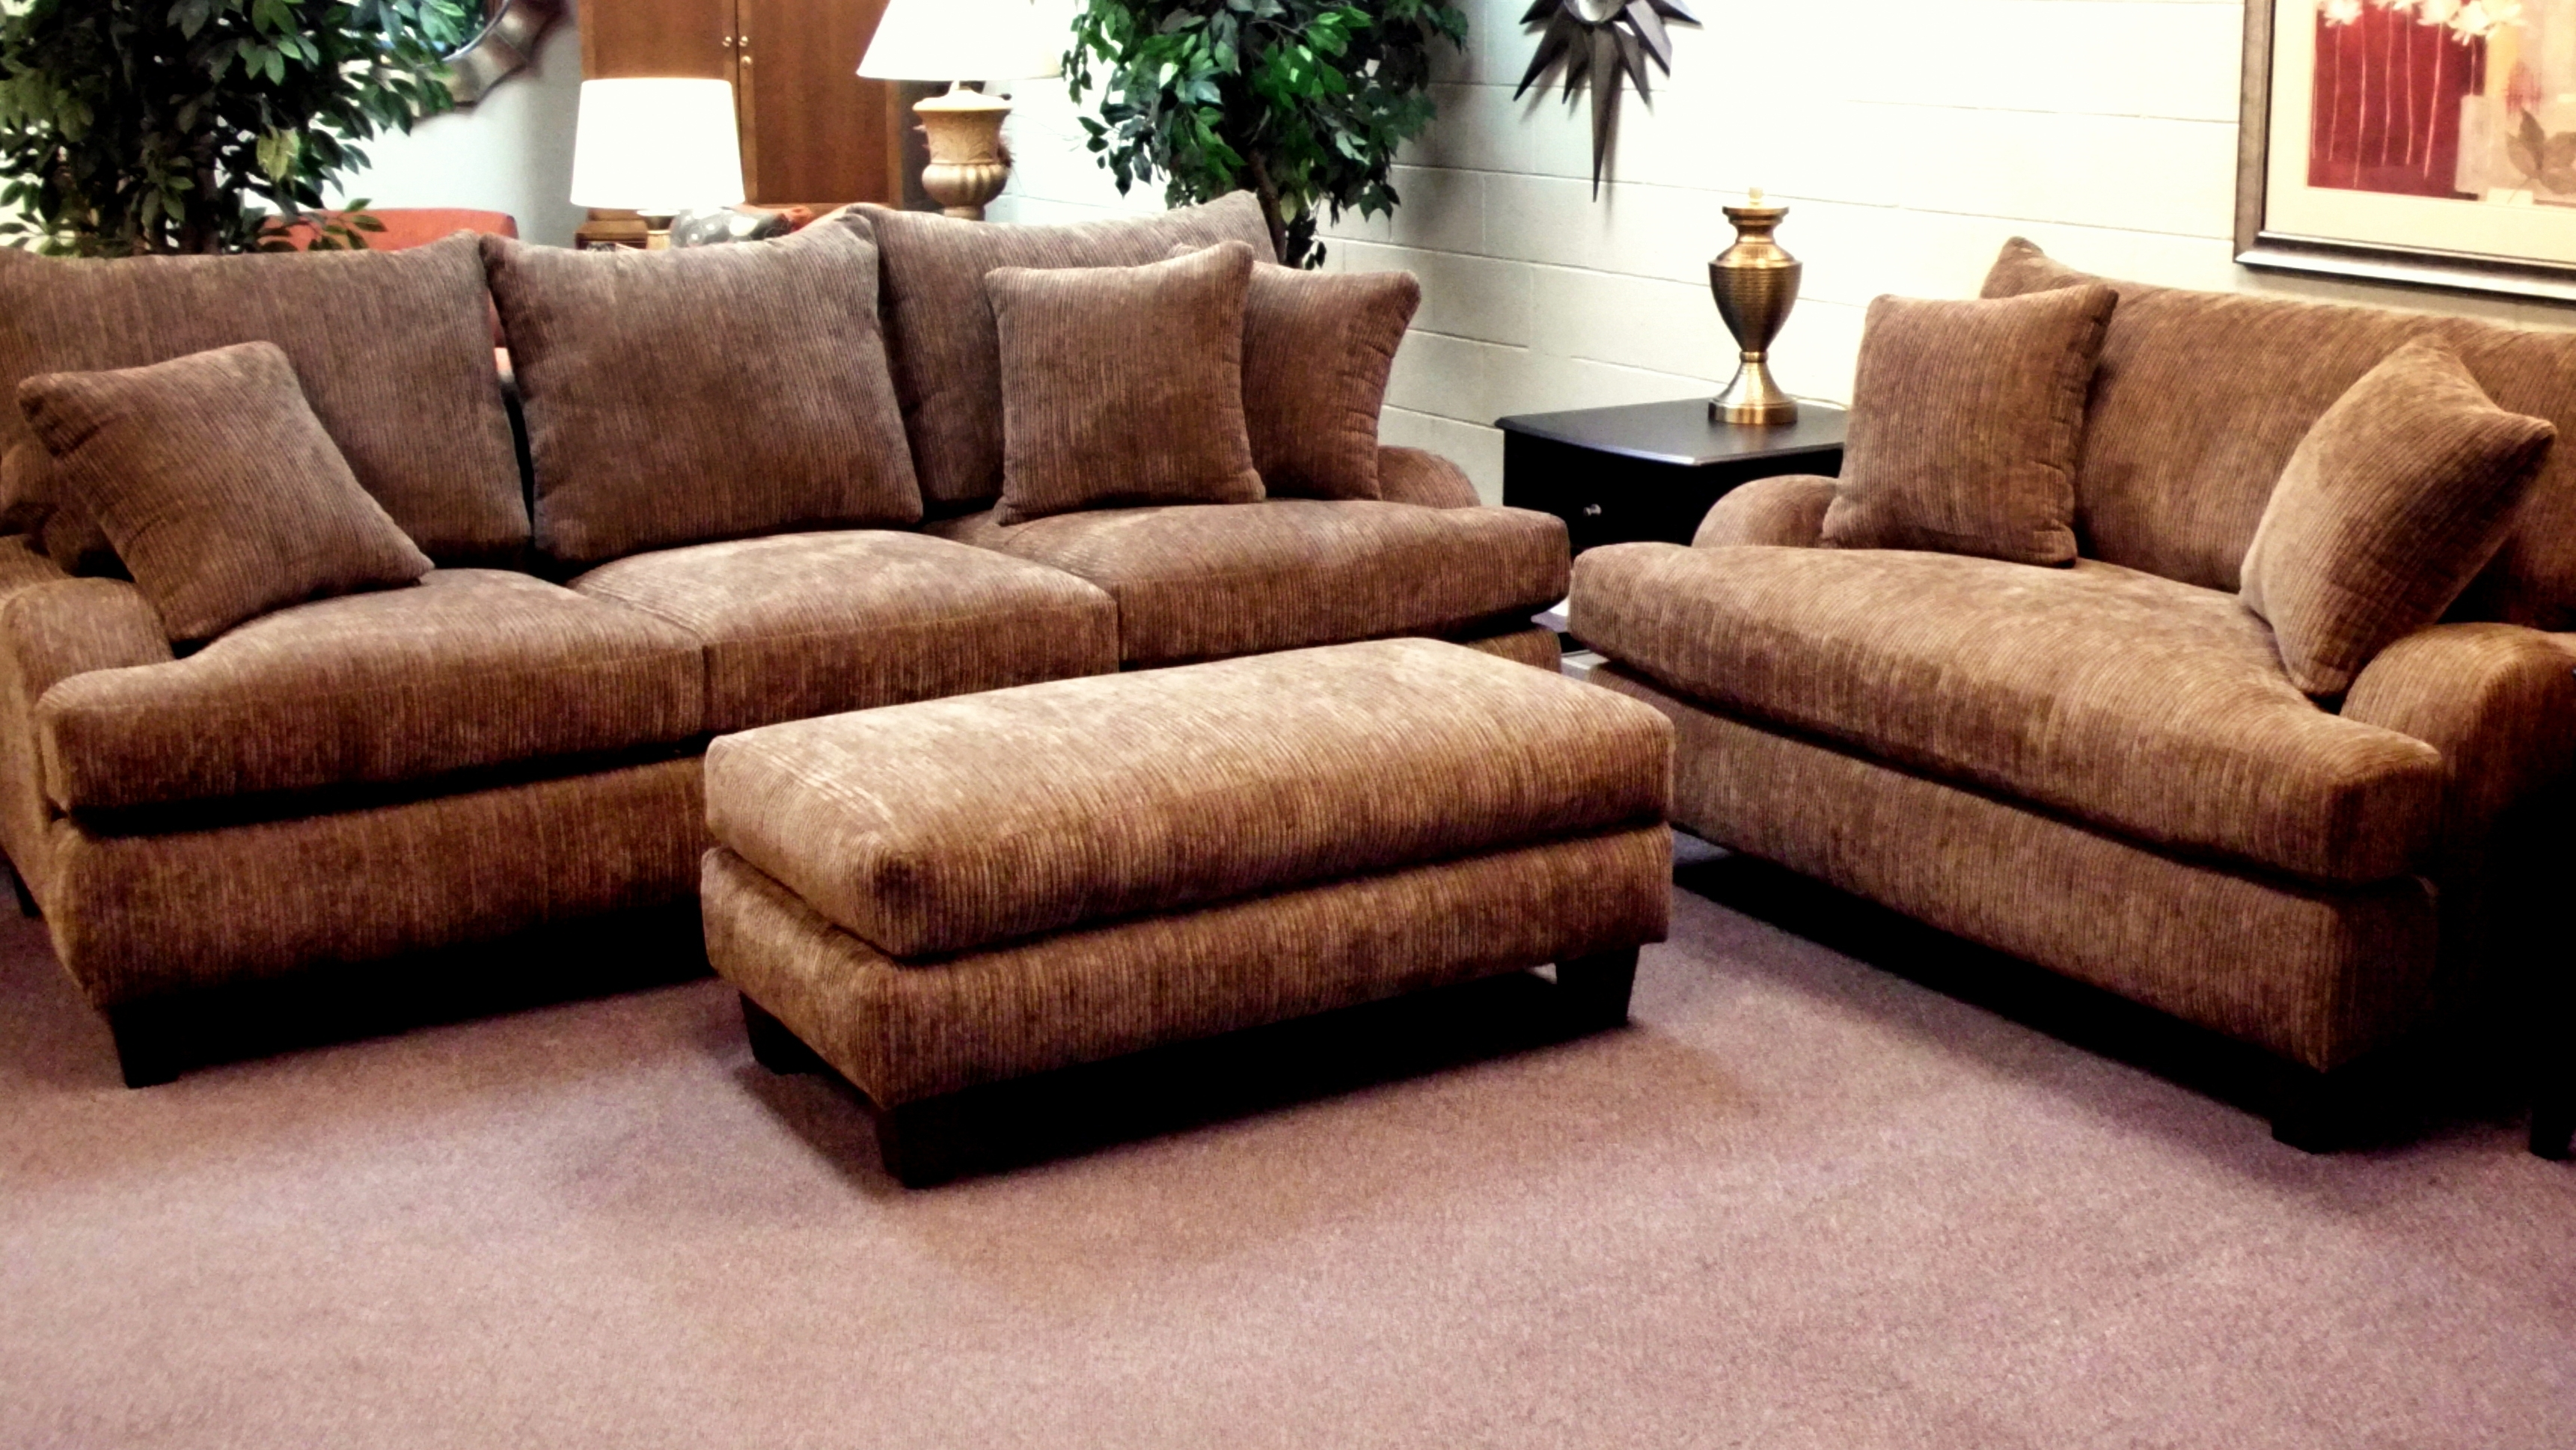 Lovesac Intended For Fashionable Oversized Sofa Chairs (View 15 of 20)